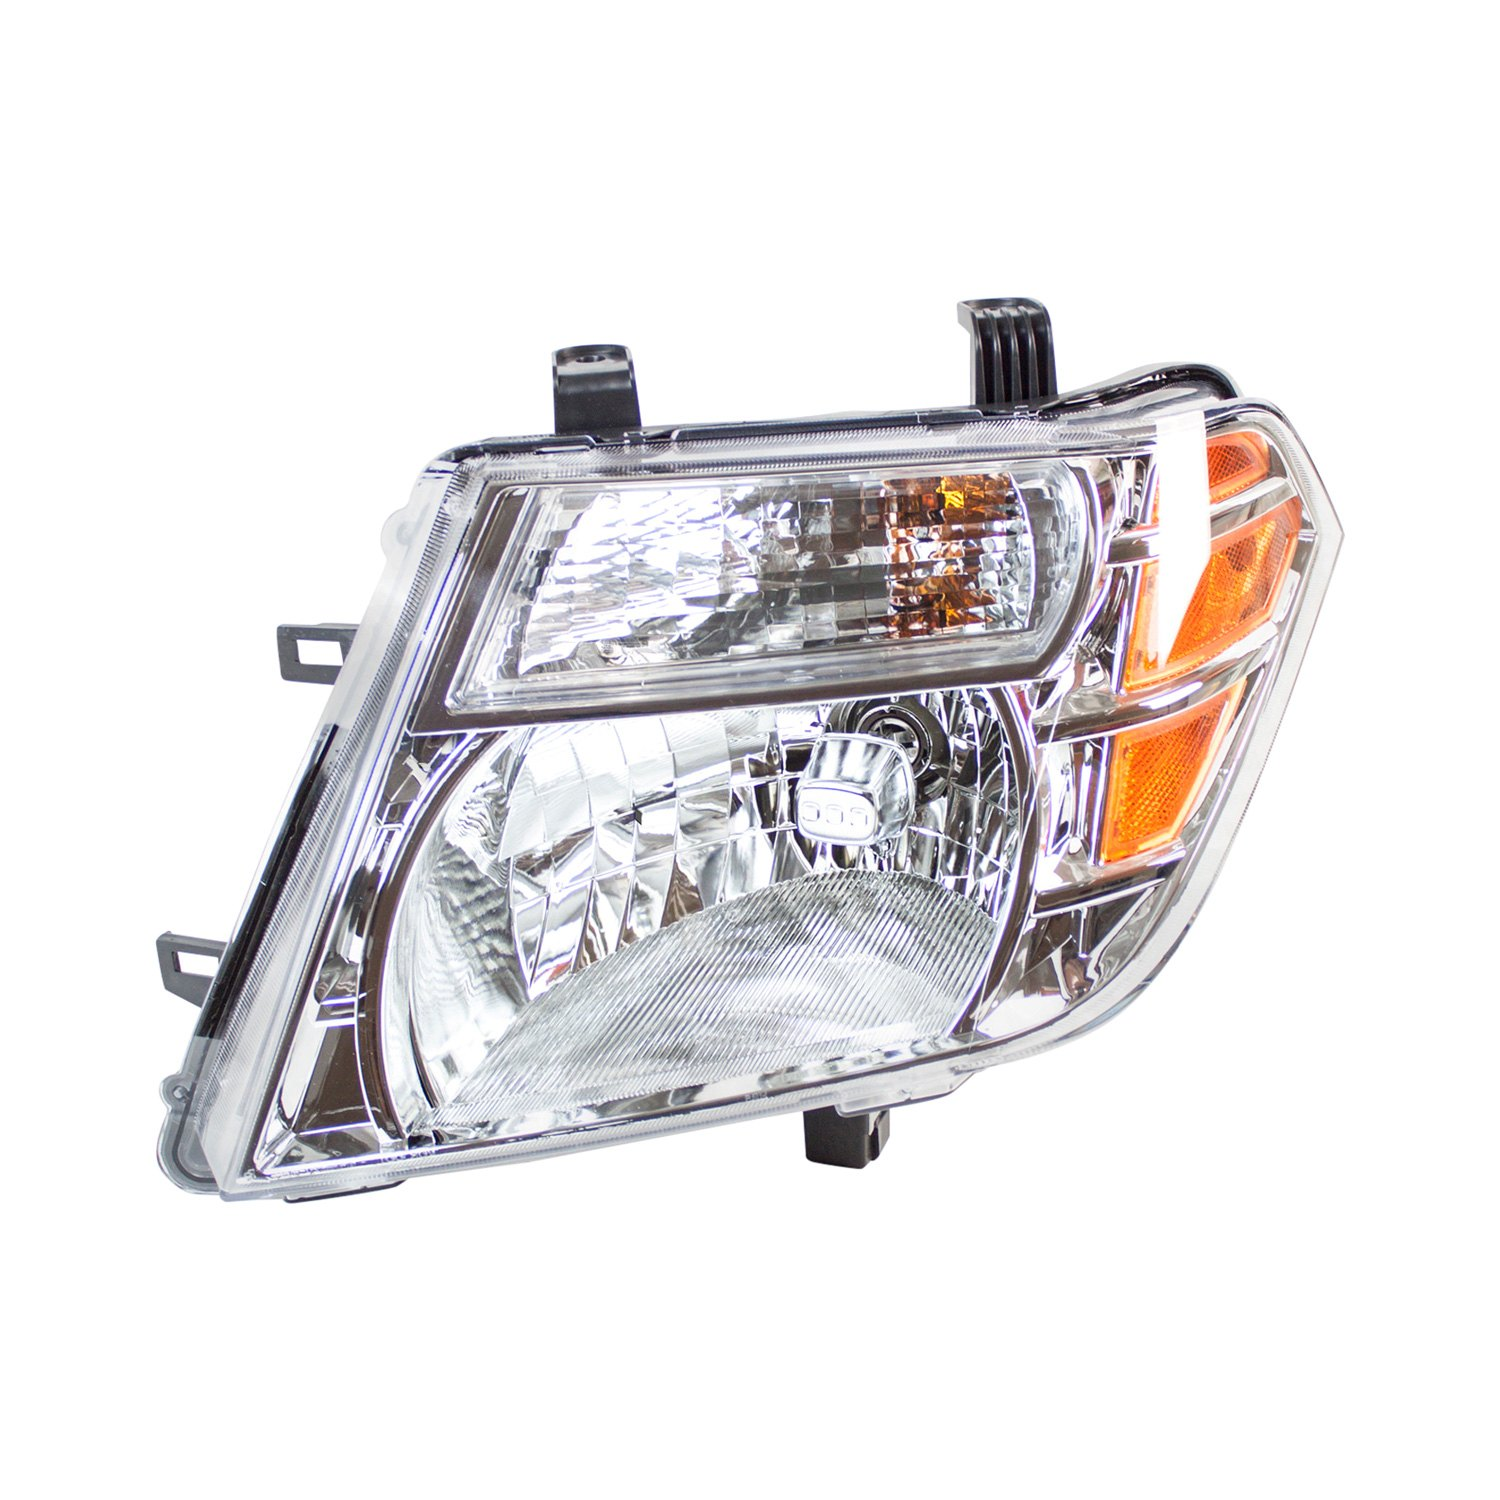 tyc nissan pathfinder 2008 2012 replacement headlight. Black Bedroom Furniture Sets. Home Design Ideas